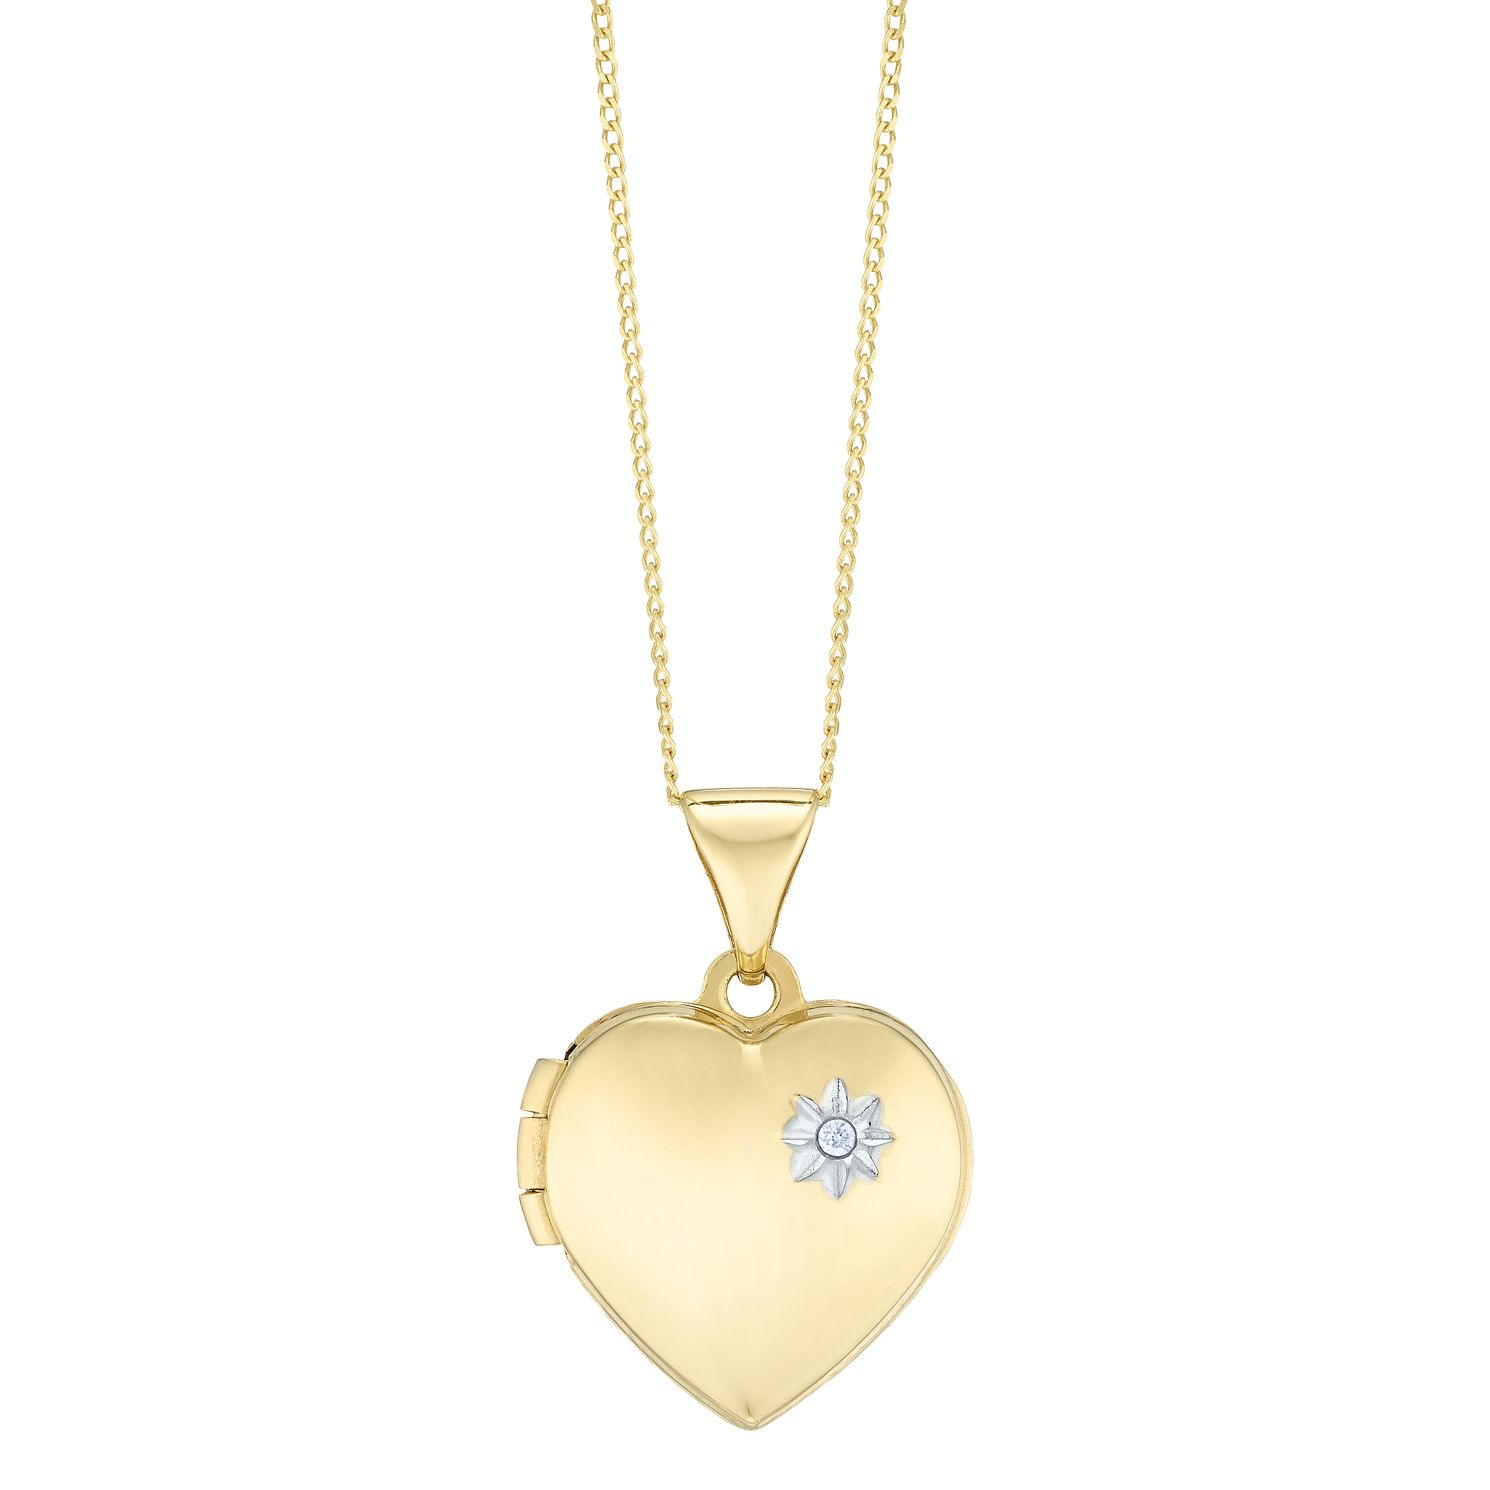 locket forevermineinitiallocket gifts lockets vdaygiftguide kate guides love spade day forever the valentines times mine of gift nyt initial york new guide